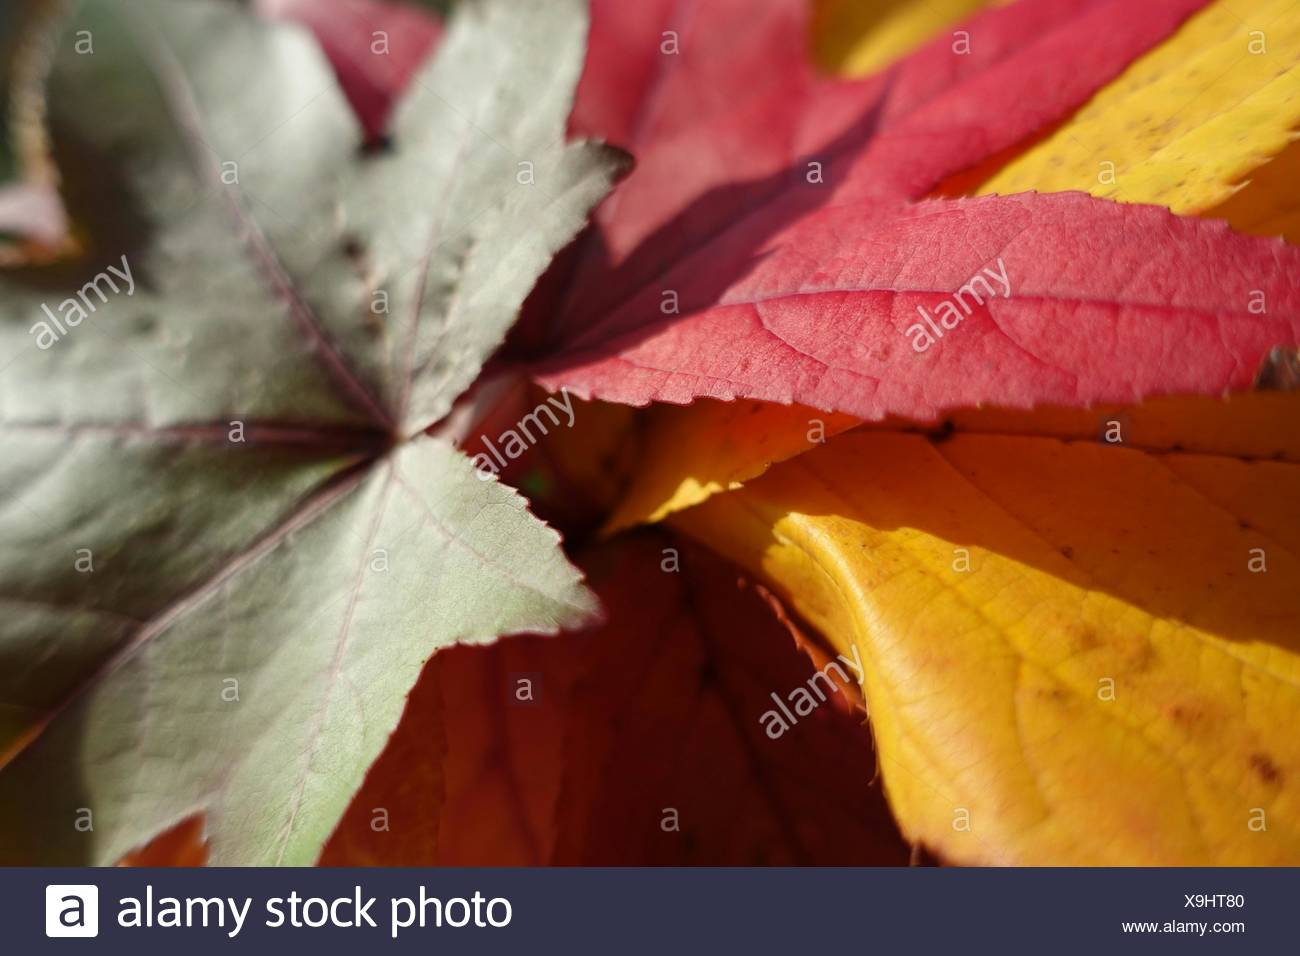 Close-Up Of Fallen Leaves During Autumn - Stock Image